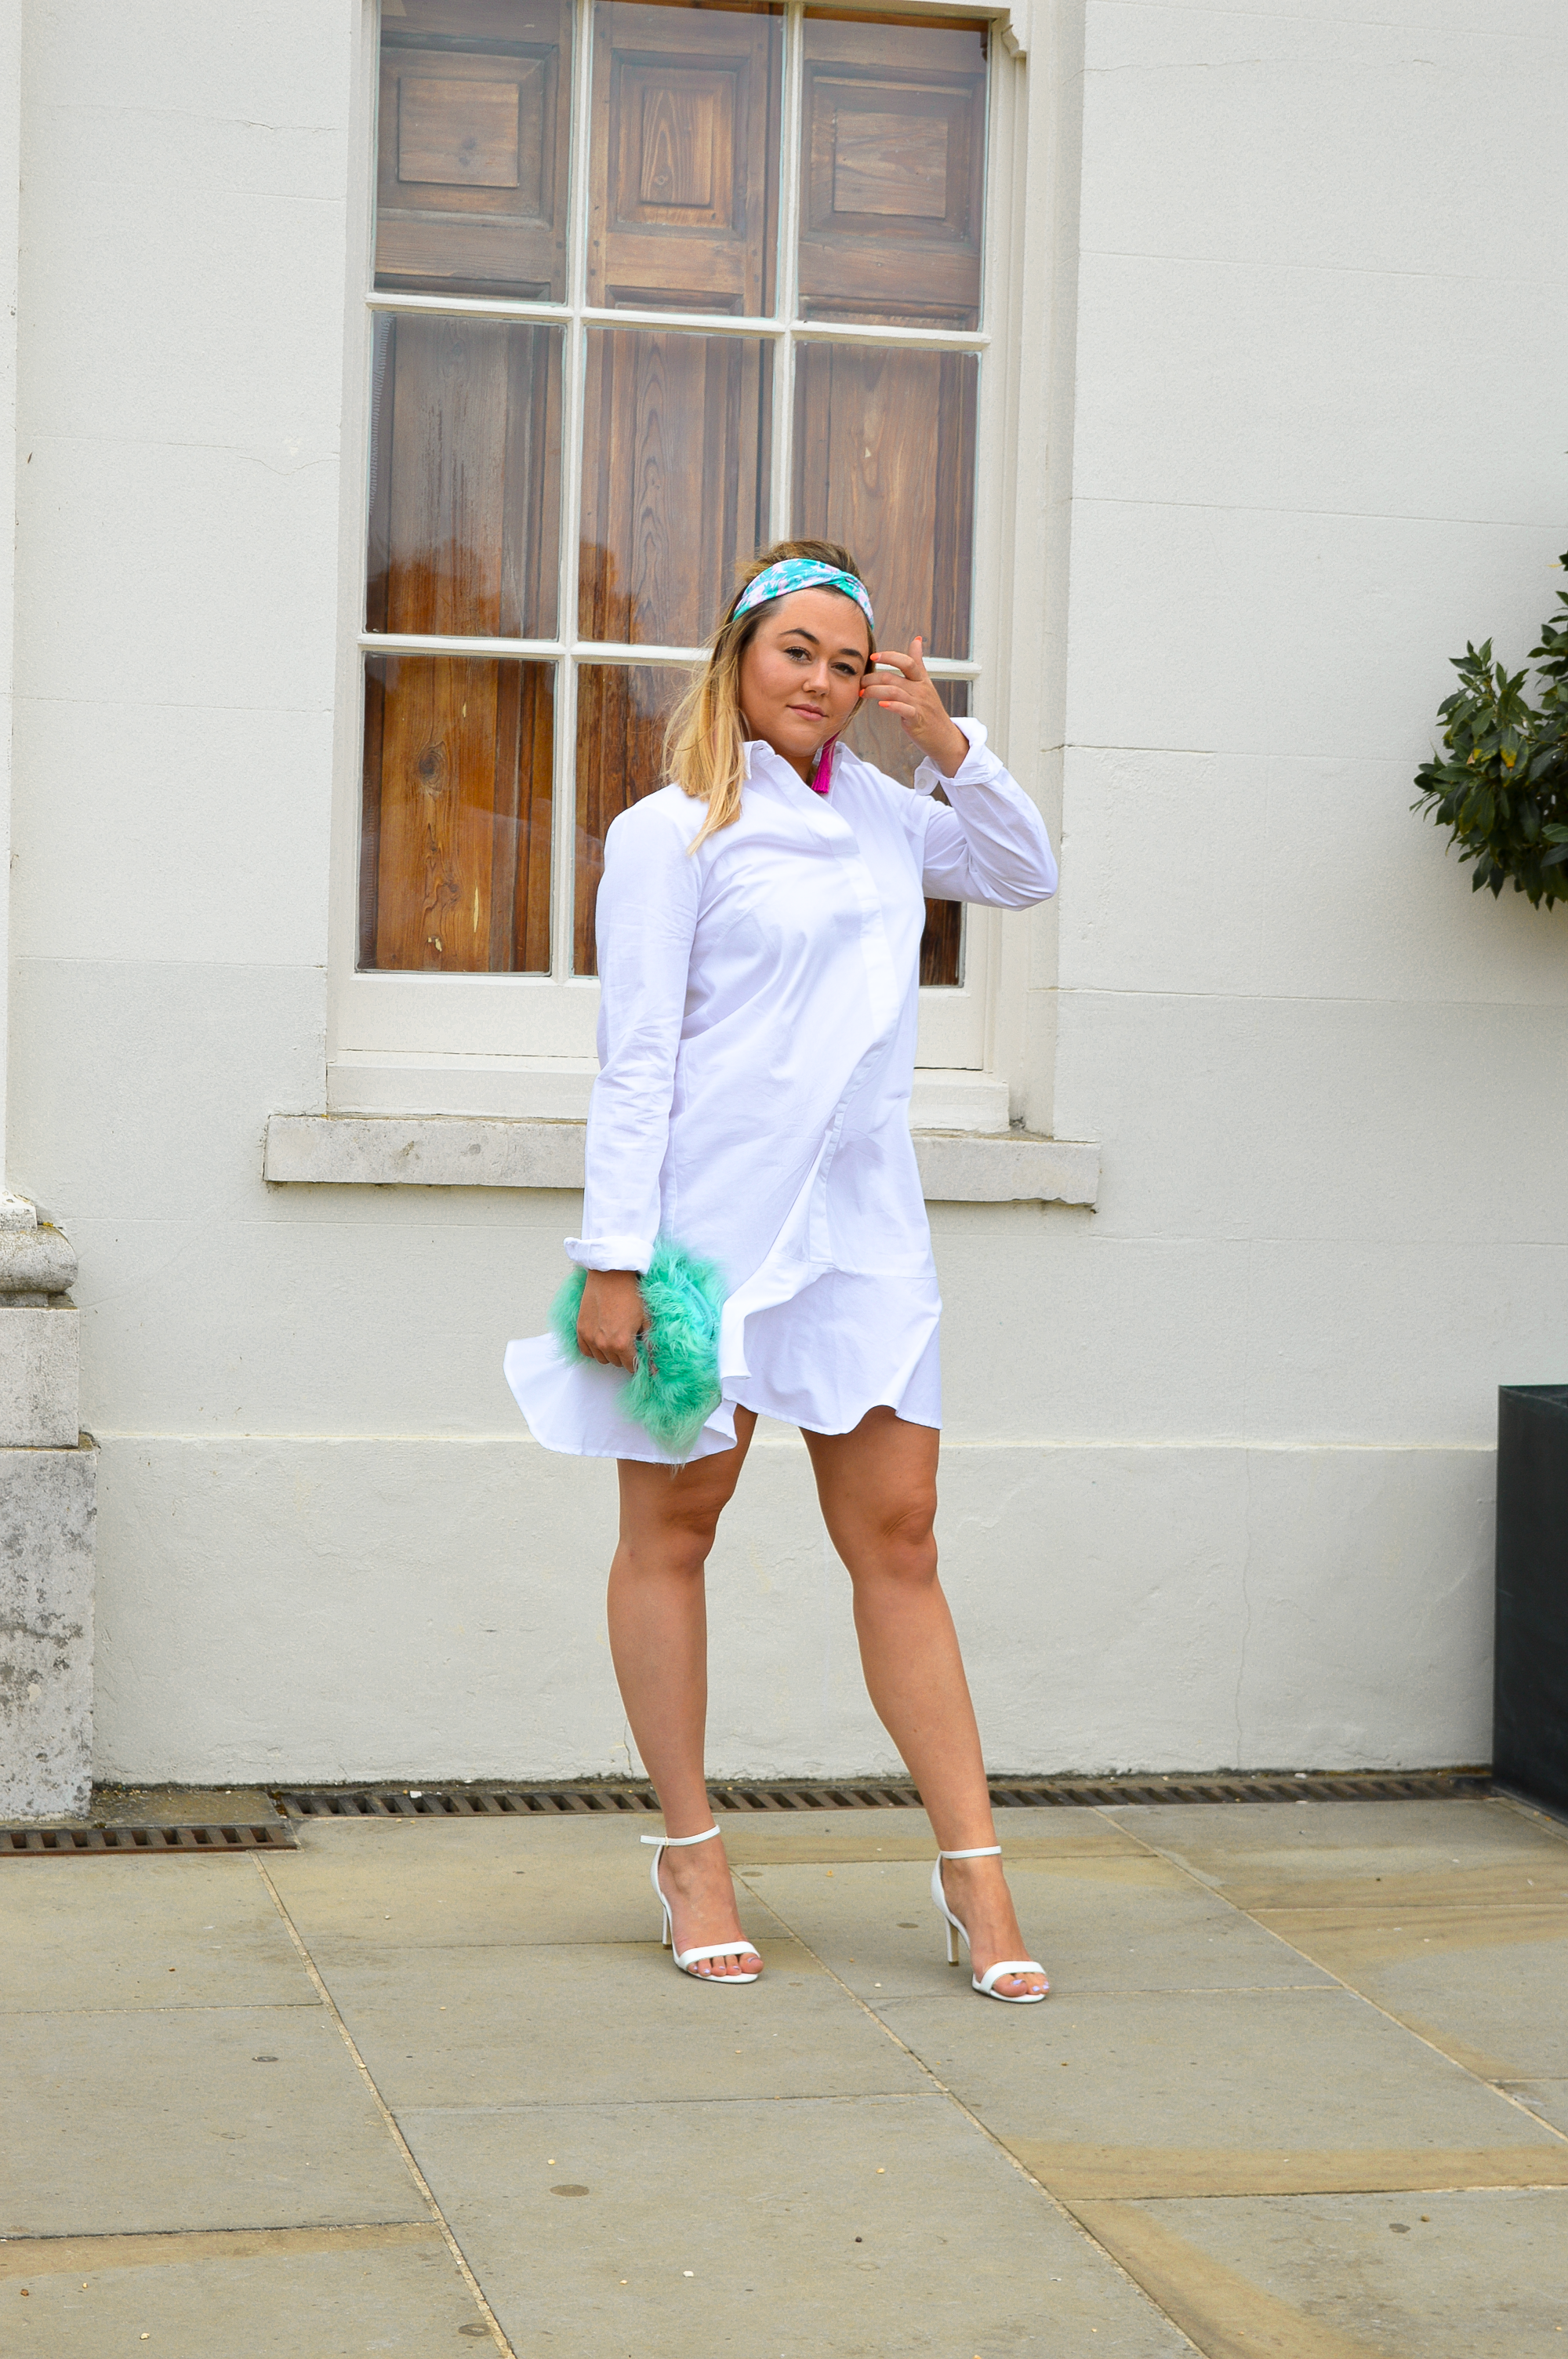 Hannah wears shirt dress, fluffy green bag and headband